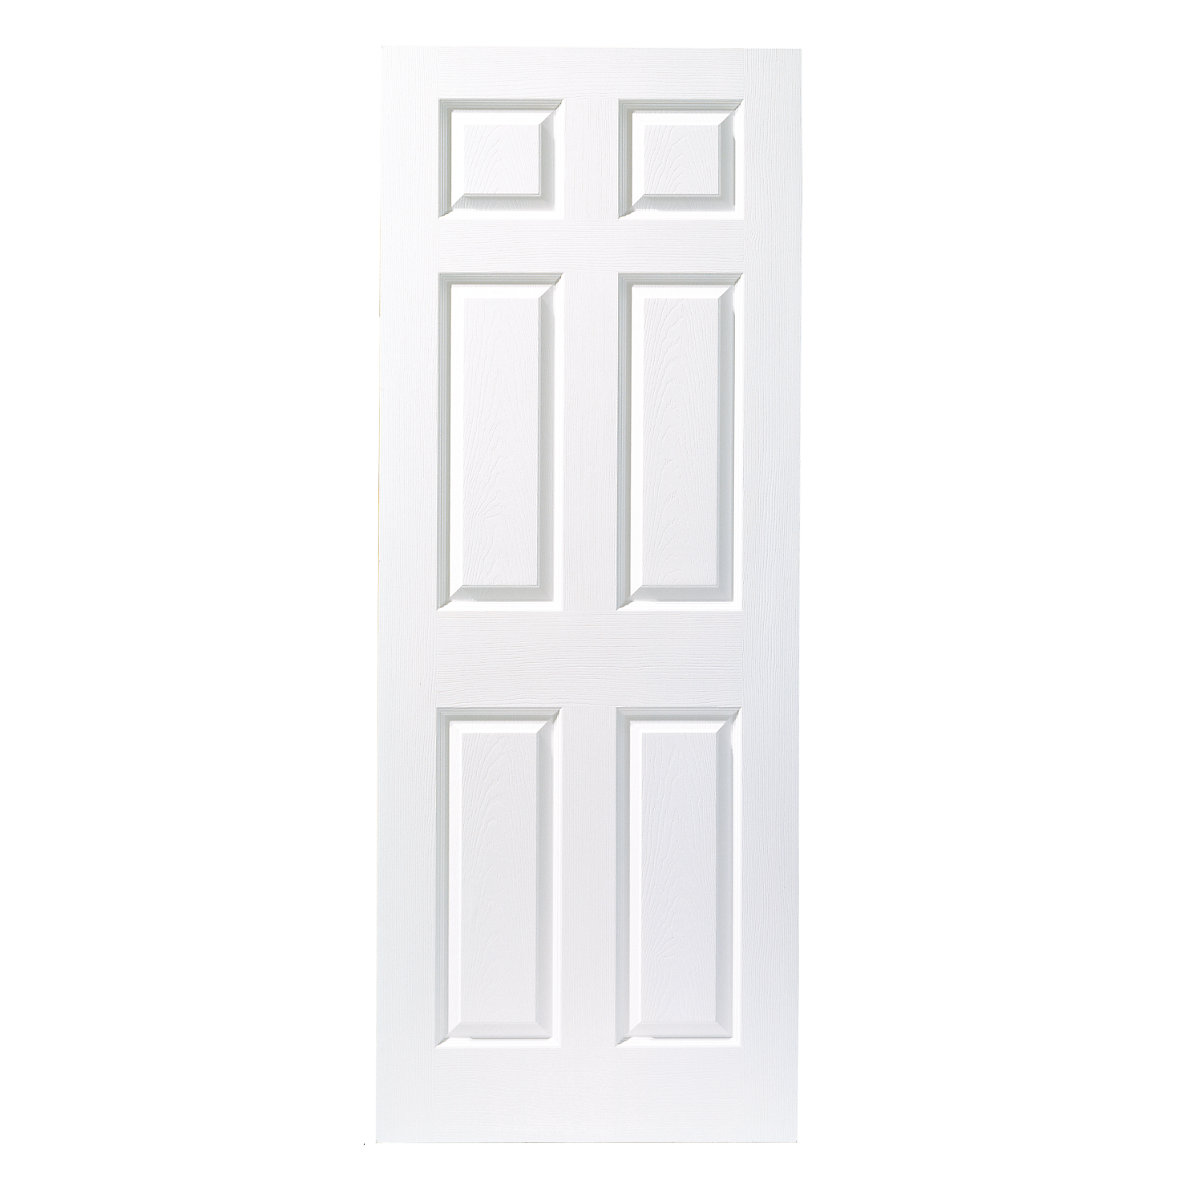 4trade projection door stop chrome travis perkins travis perkins white value for money moulded 6 panel grained hollow core internal door size 2040mm x 826mm x 40mm rubansaba